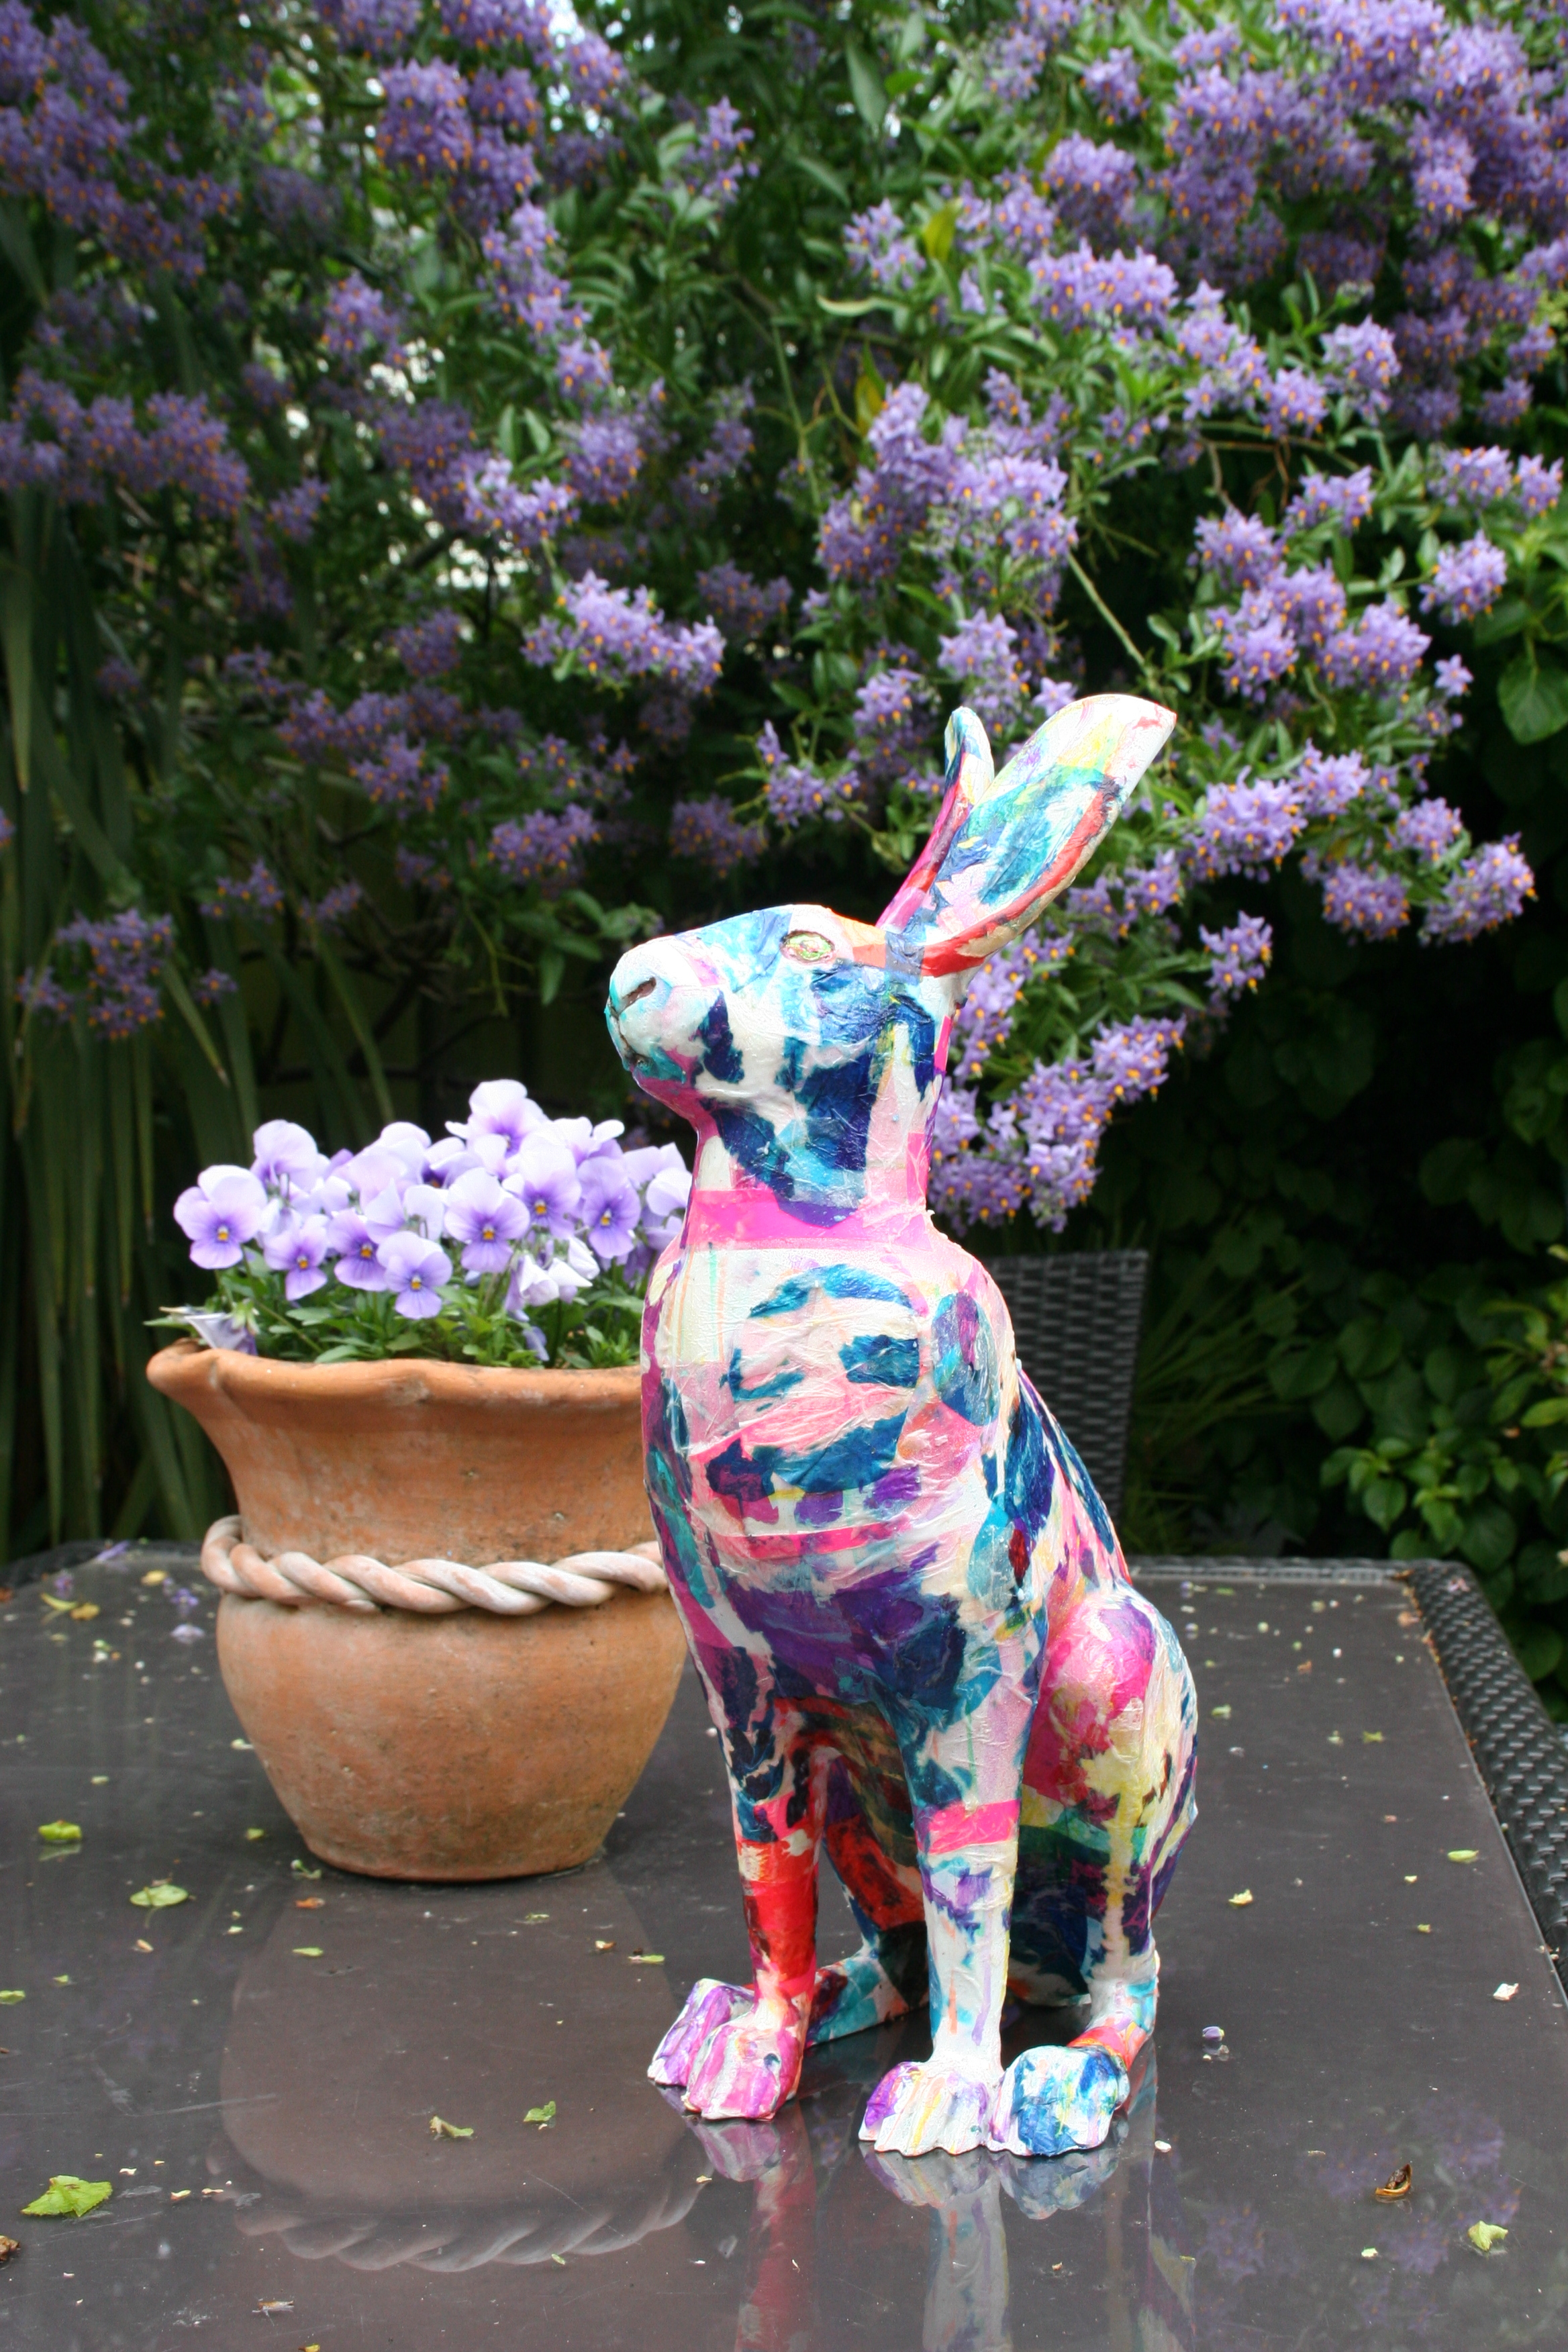 Sculptures and Commissions - These include totemic timber poles, hares for the Cotswold Hare Trail, Bicycle for Cheltenham Cycle festival, lollipops, a pigeon and a decorated lamp post for Cheltenham Town Council!